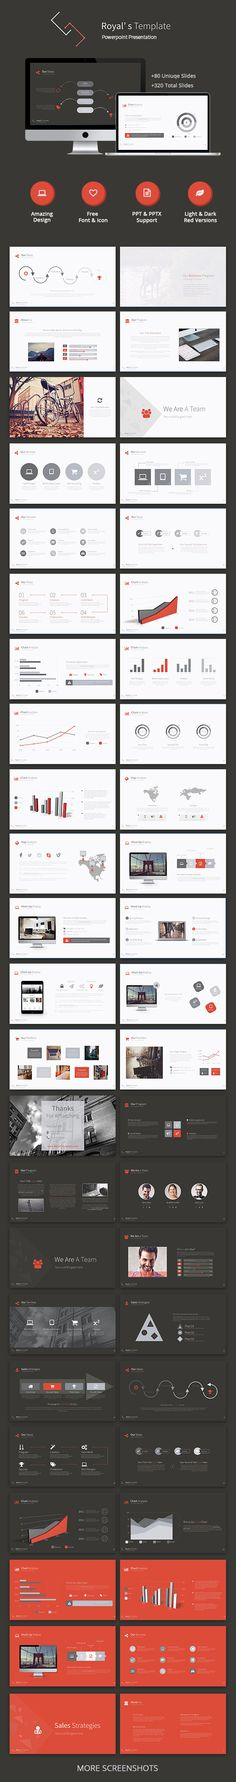 #Royal's Powerpoint Template - #Business #PowerPoint Templates Download here: https://graphicriver.net/item/royals-powerpoint-template/11717128?ref=alena994